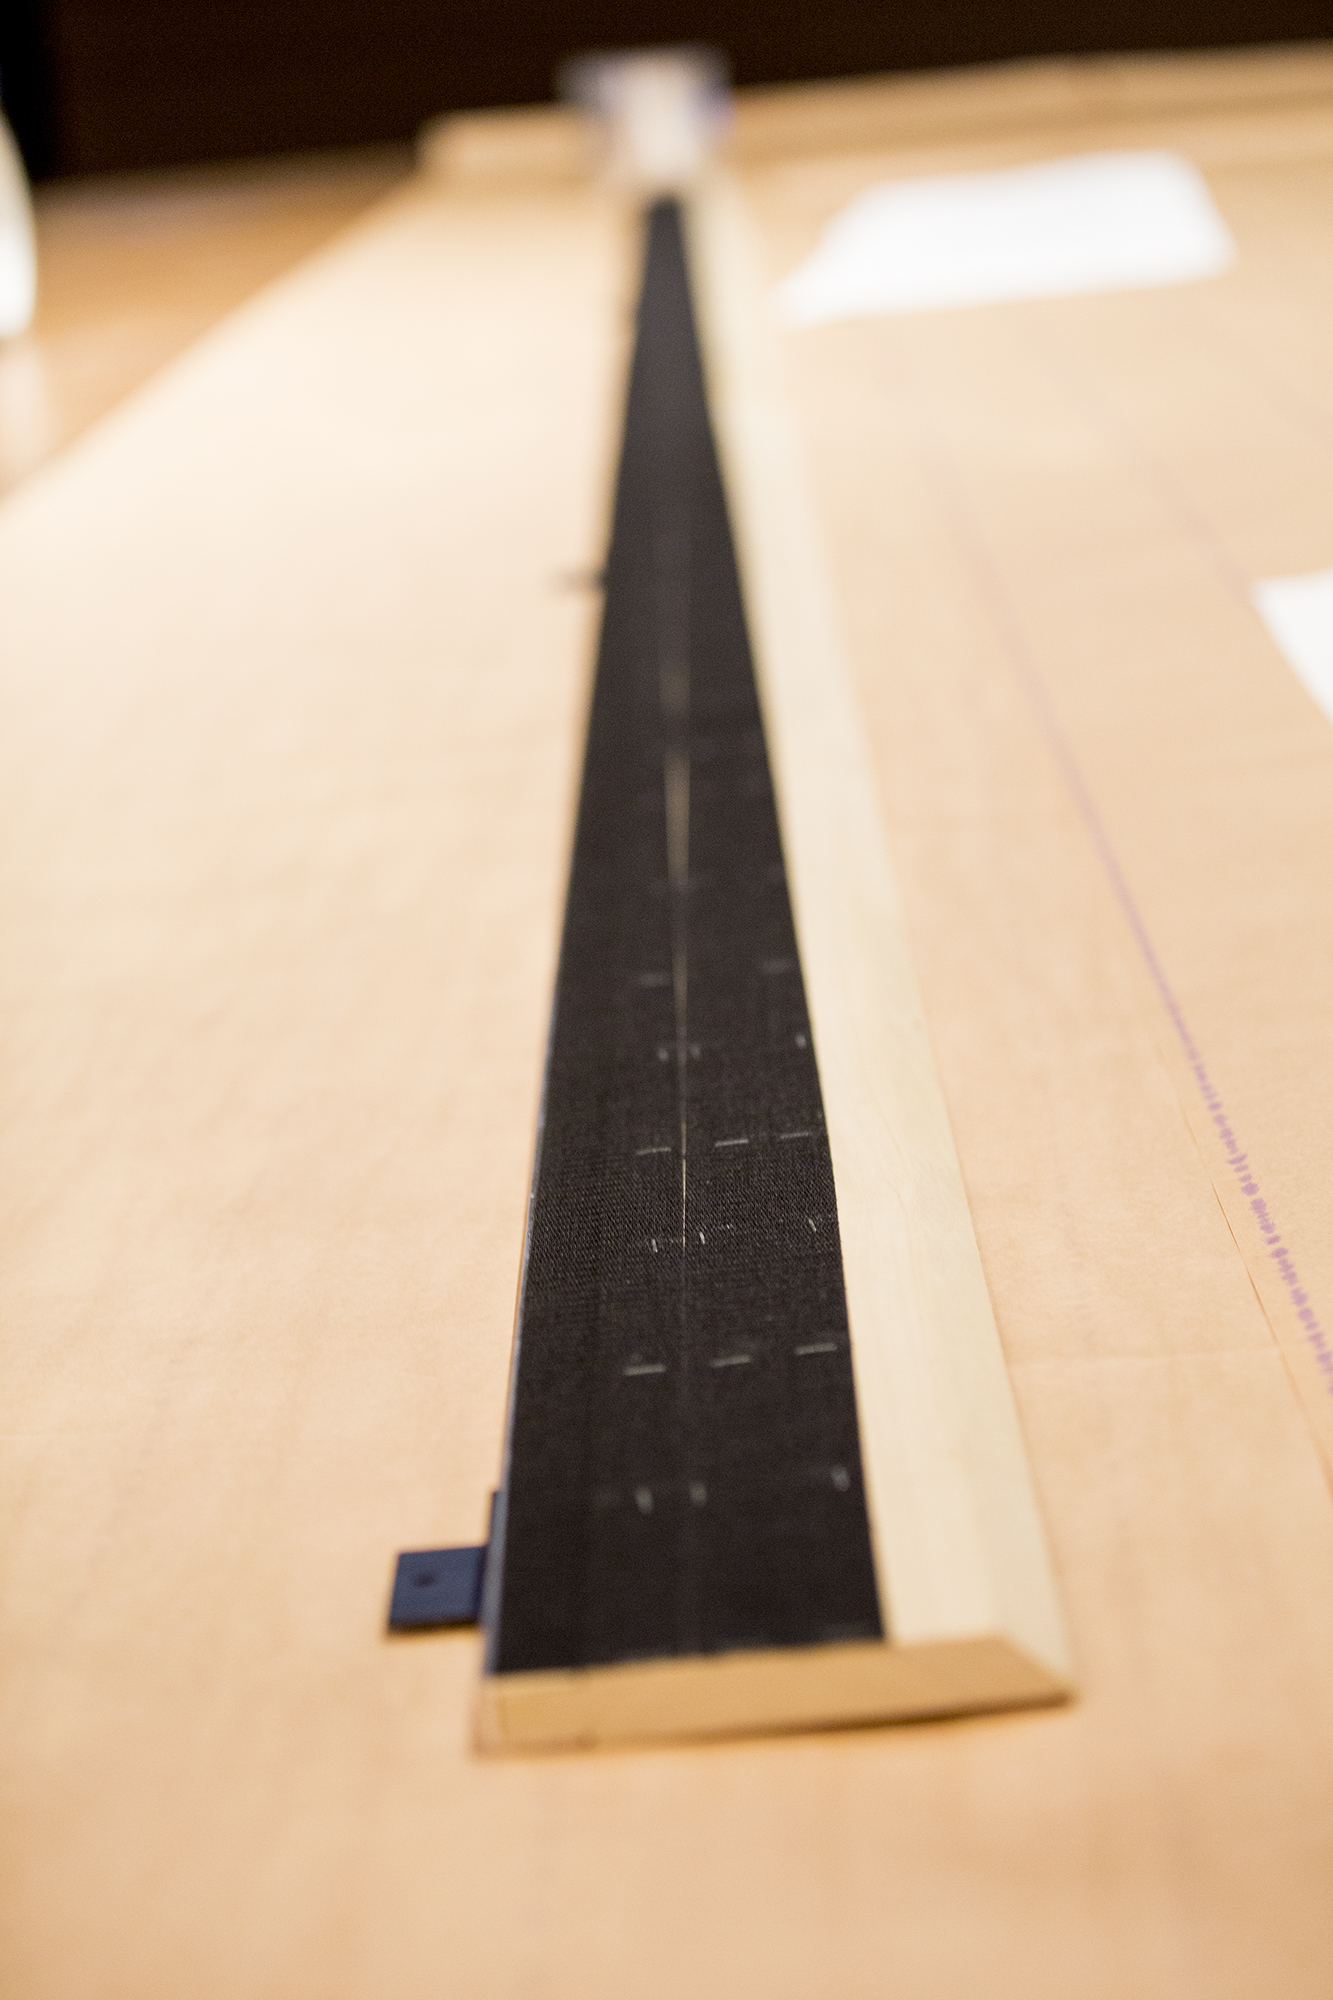 A close up of the Velcro board before it's attachment to the wall